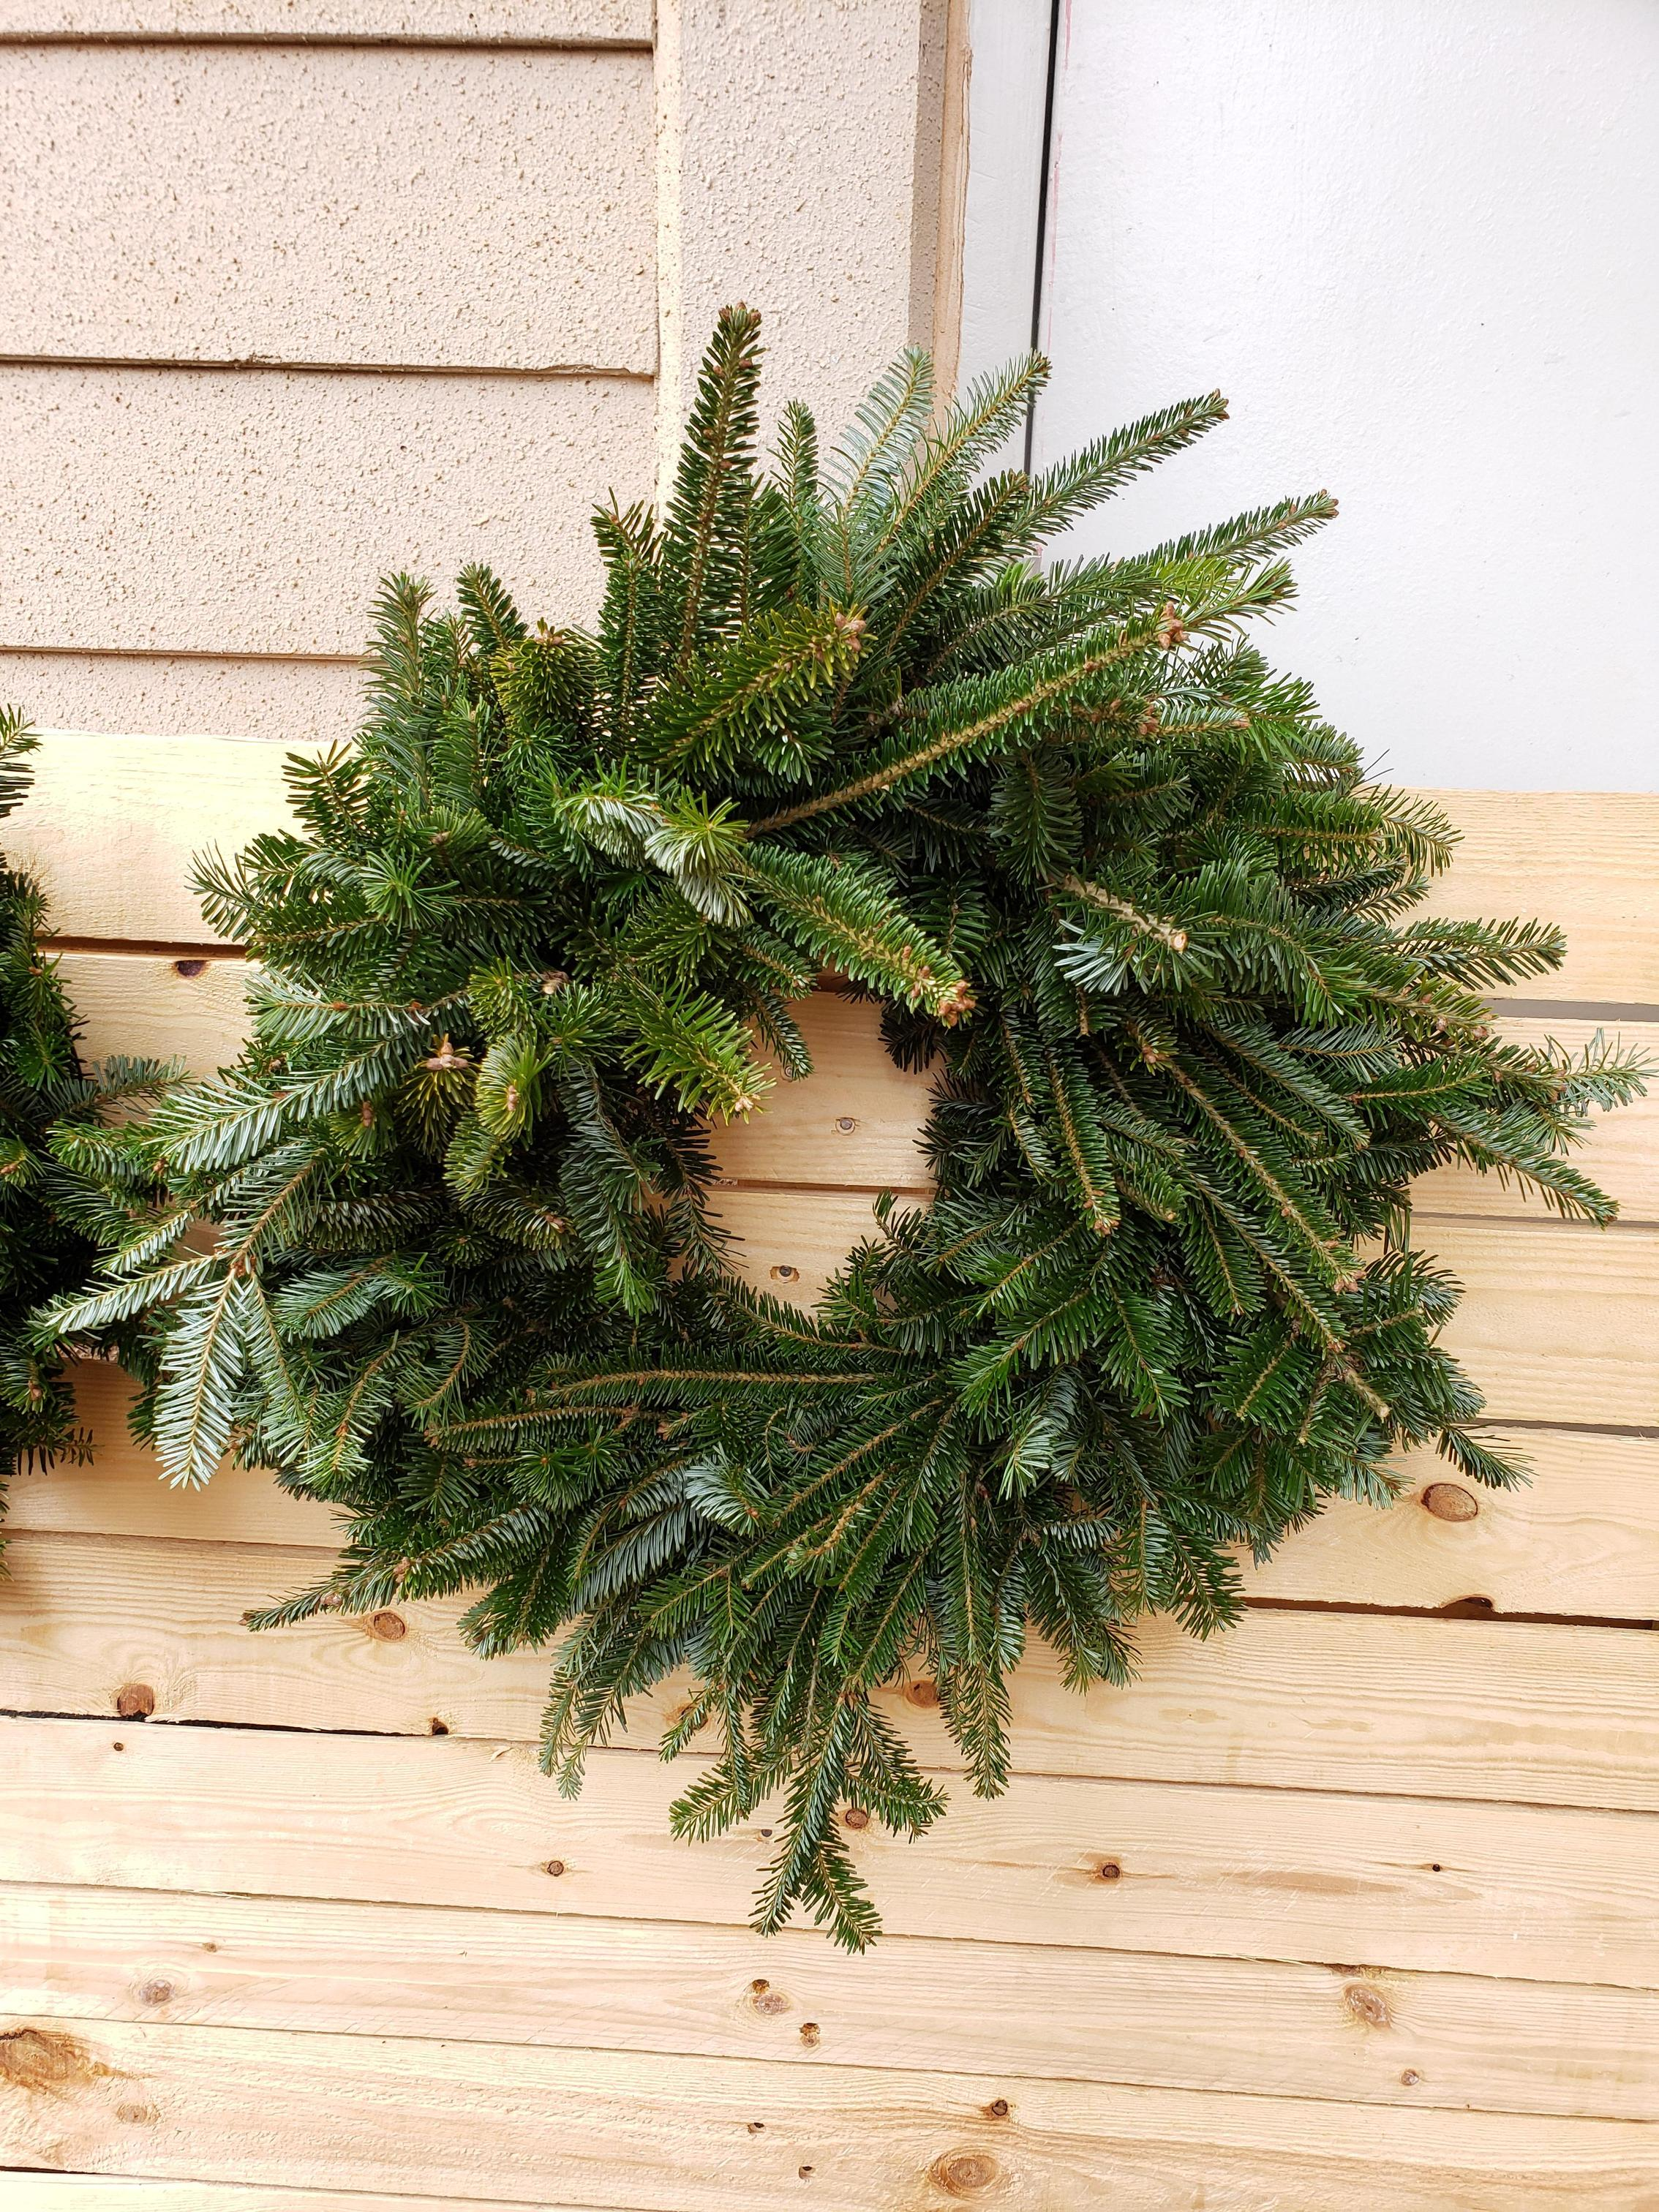 FFA Students are making Christmas wreaths Image